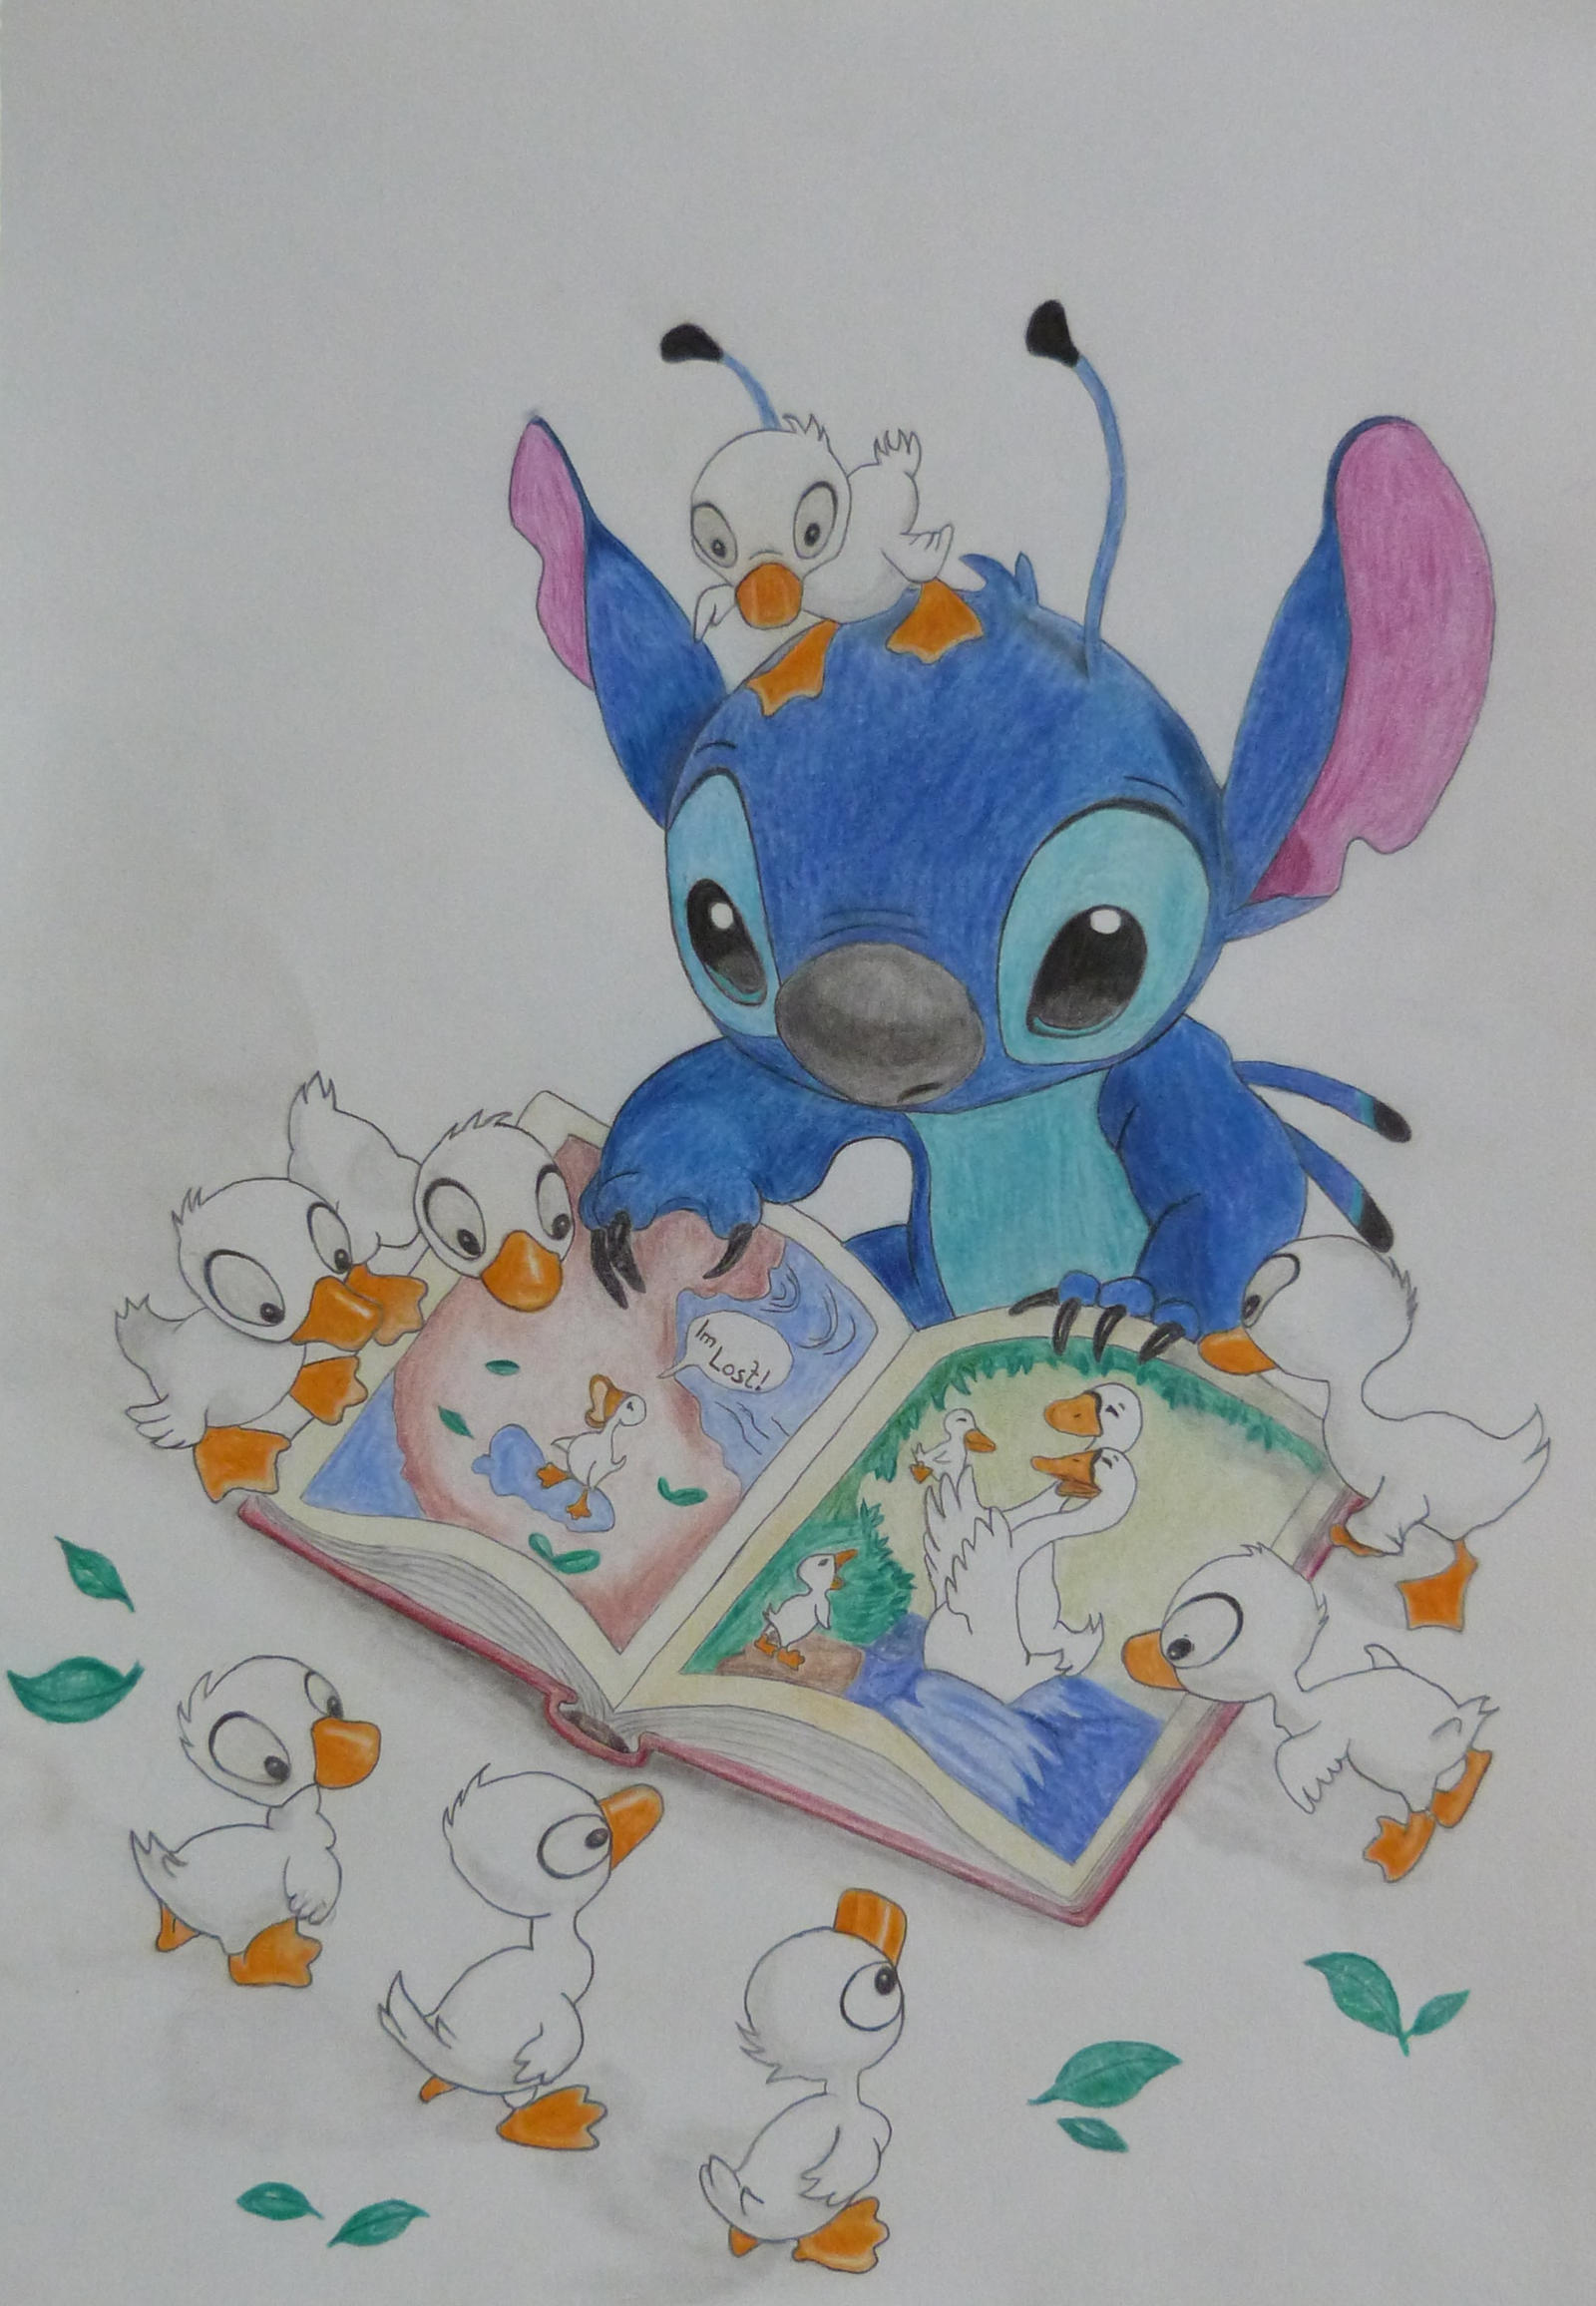 Stitch with Ducks  :-) by Fivelinger